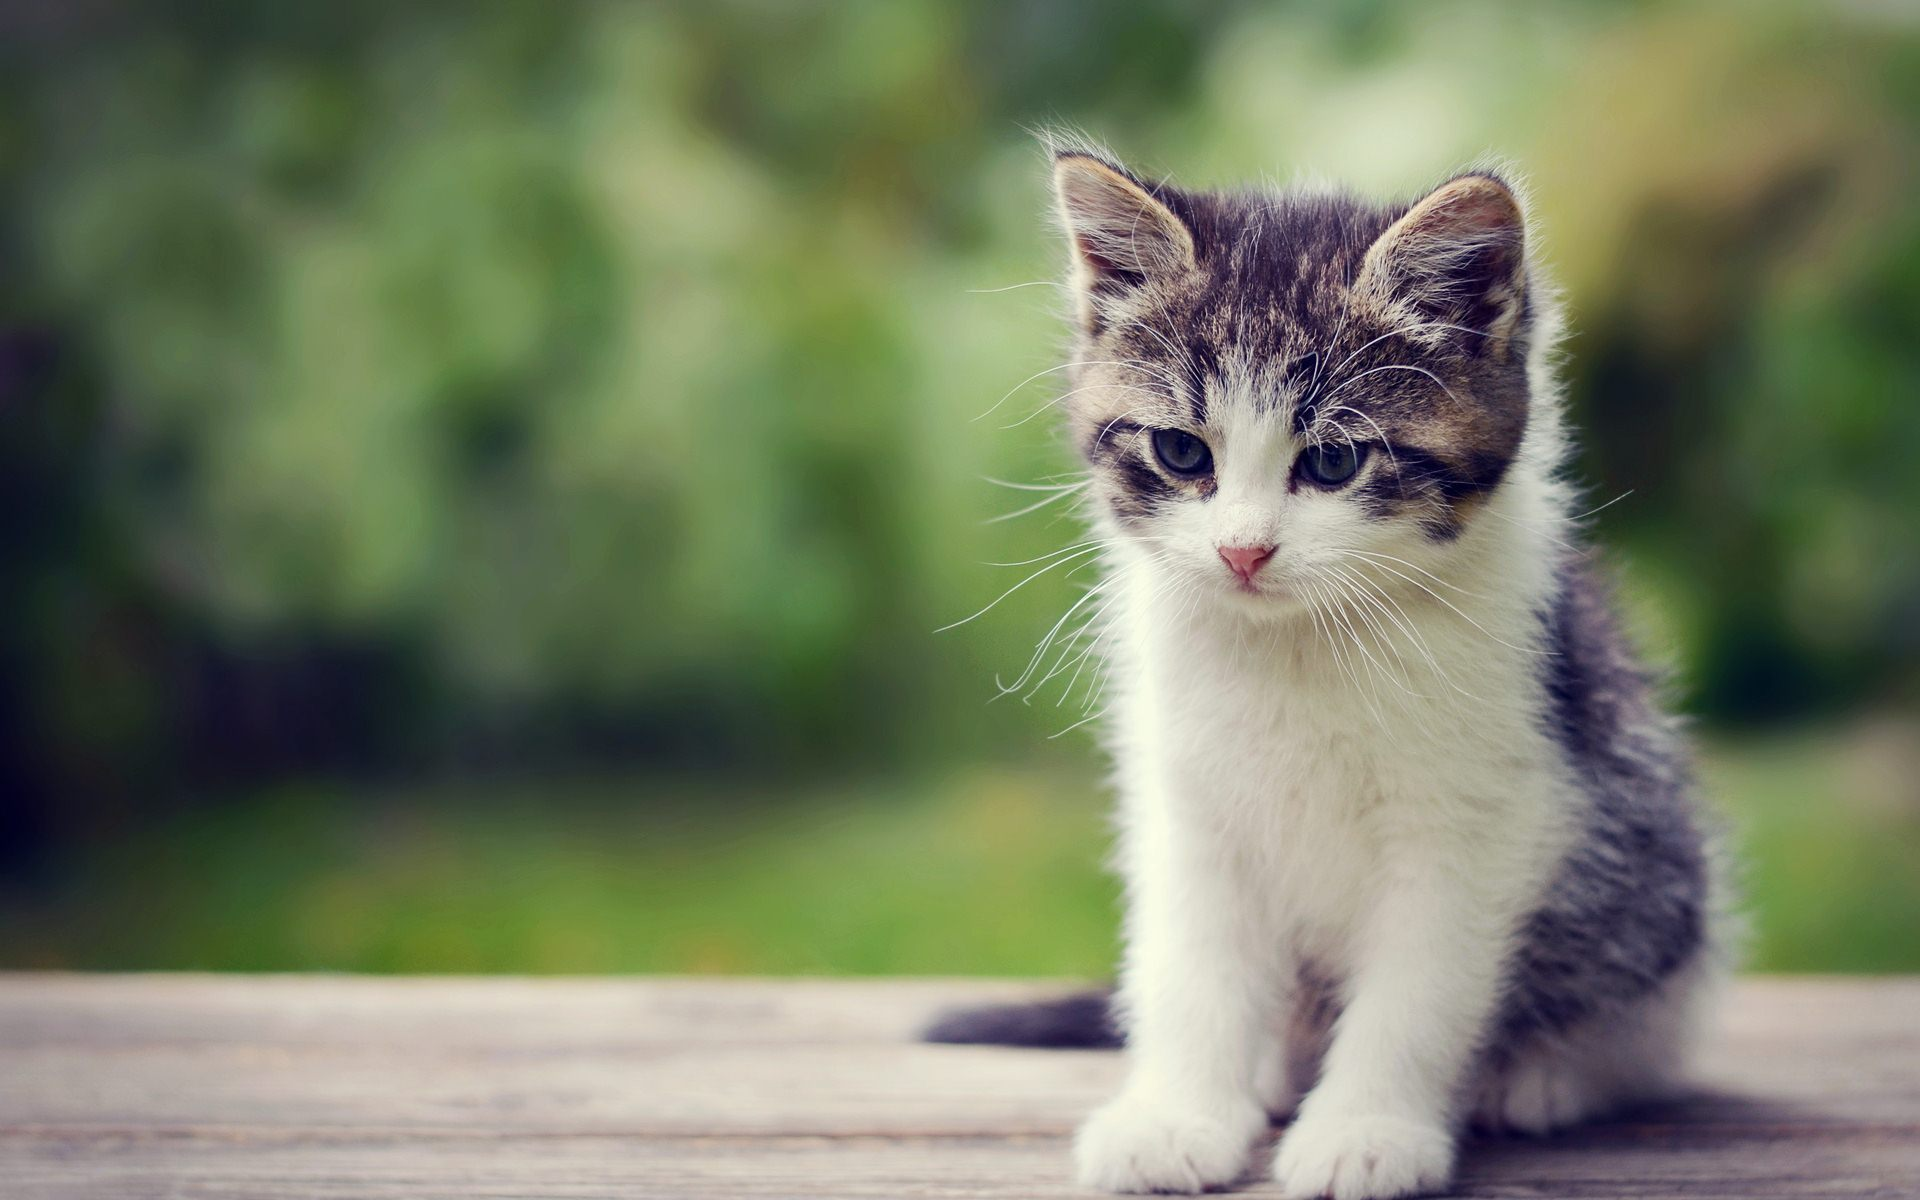 Cute Kittens Wallpapers  Android Apps on Google Play 1920x1200